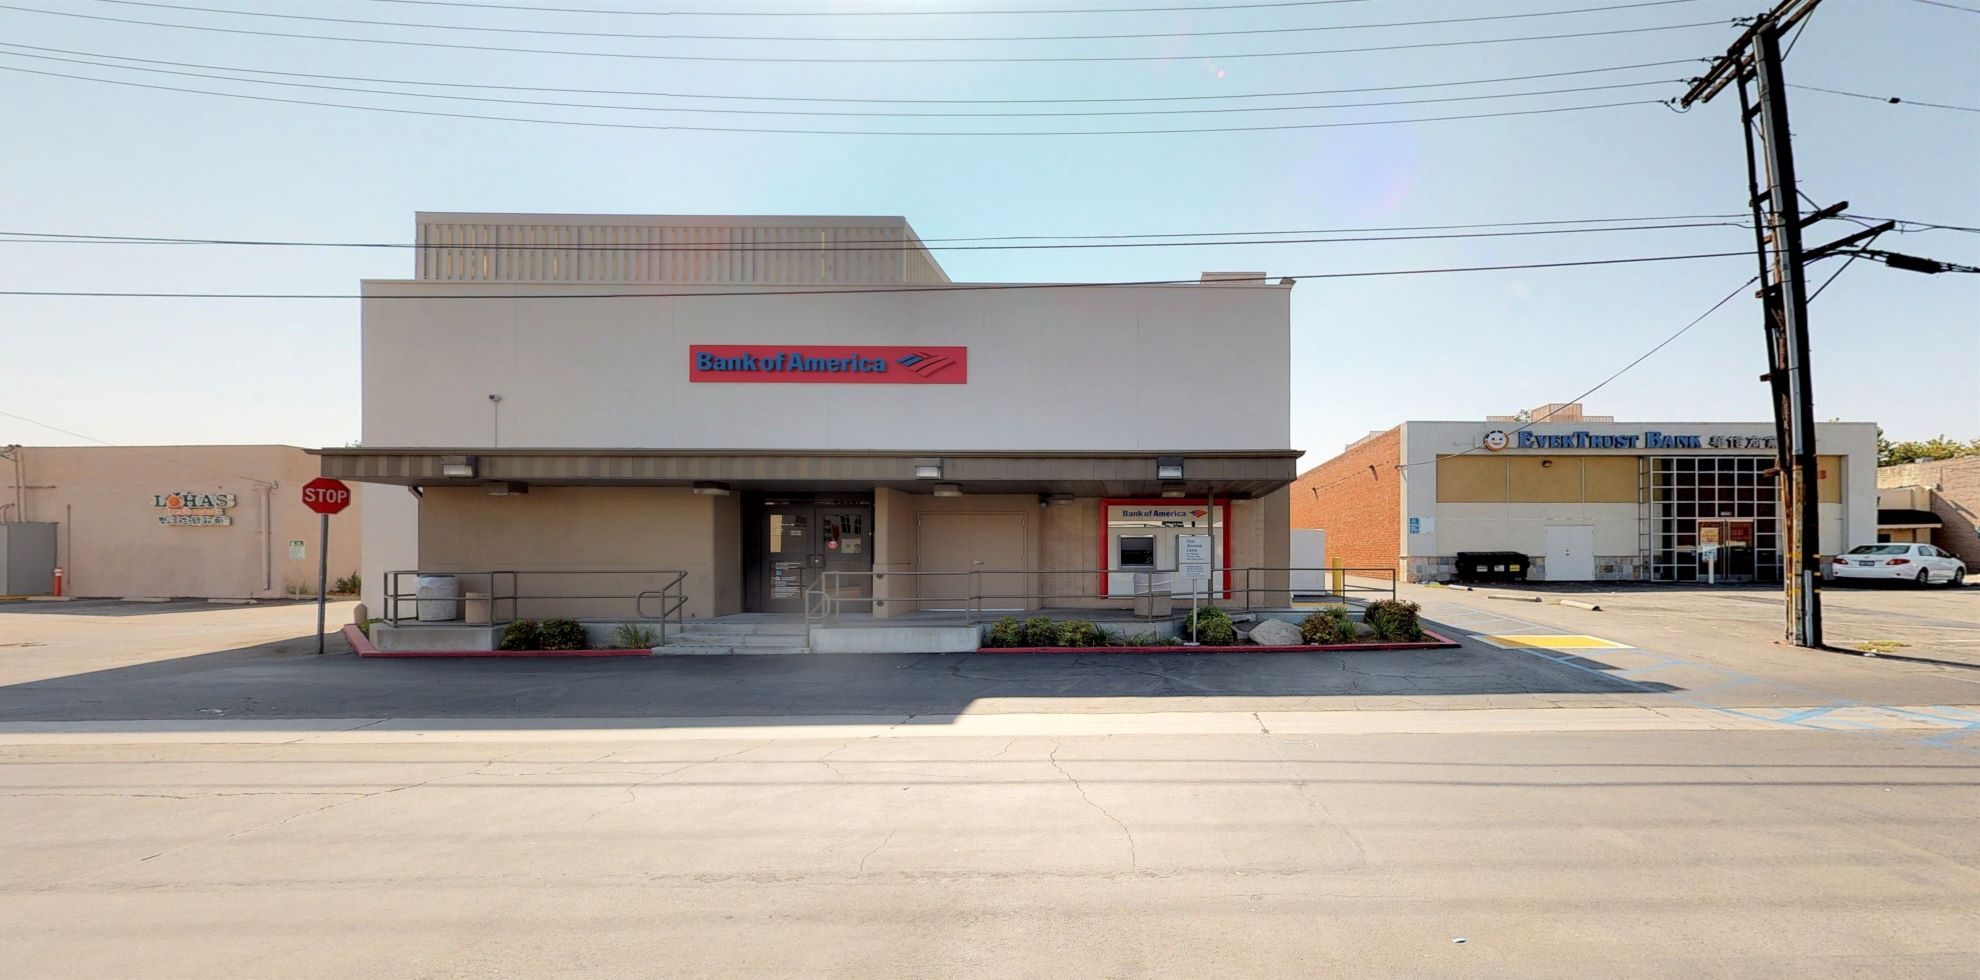 Bank of America financial center with walk-up ATM | 1234 S Baldwin Ave, Arcadia, CA 91007